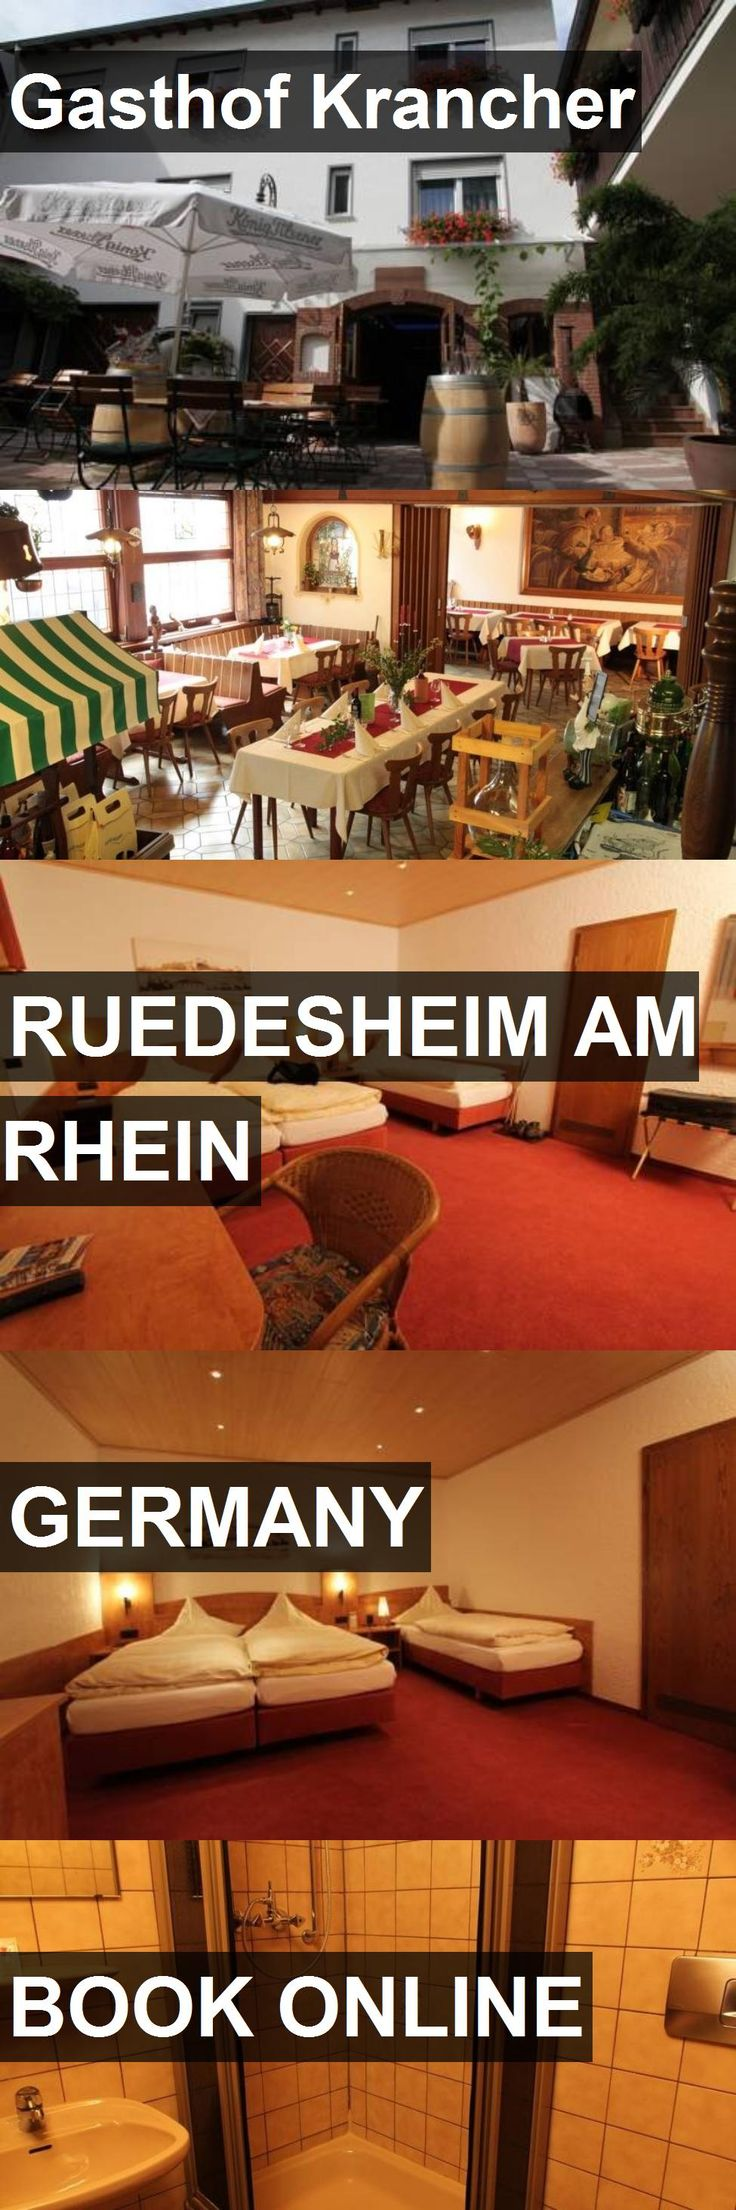 Hotel Gasthof Krancher in Ruedesheim am Rhein, Germany. For more information, photos, reviews and best prices please follow the link. #Germany #RuedesheimamRhein #travel #vacation #hotel